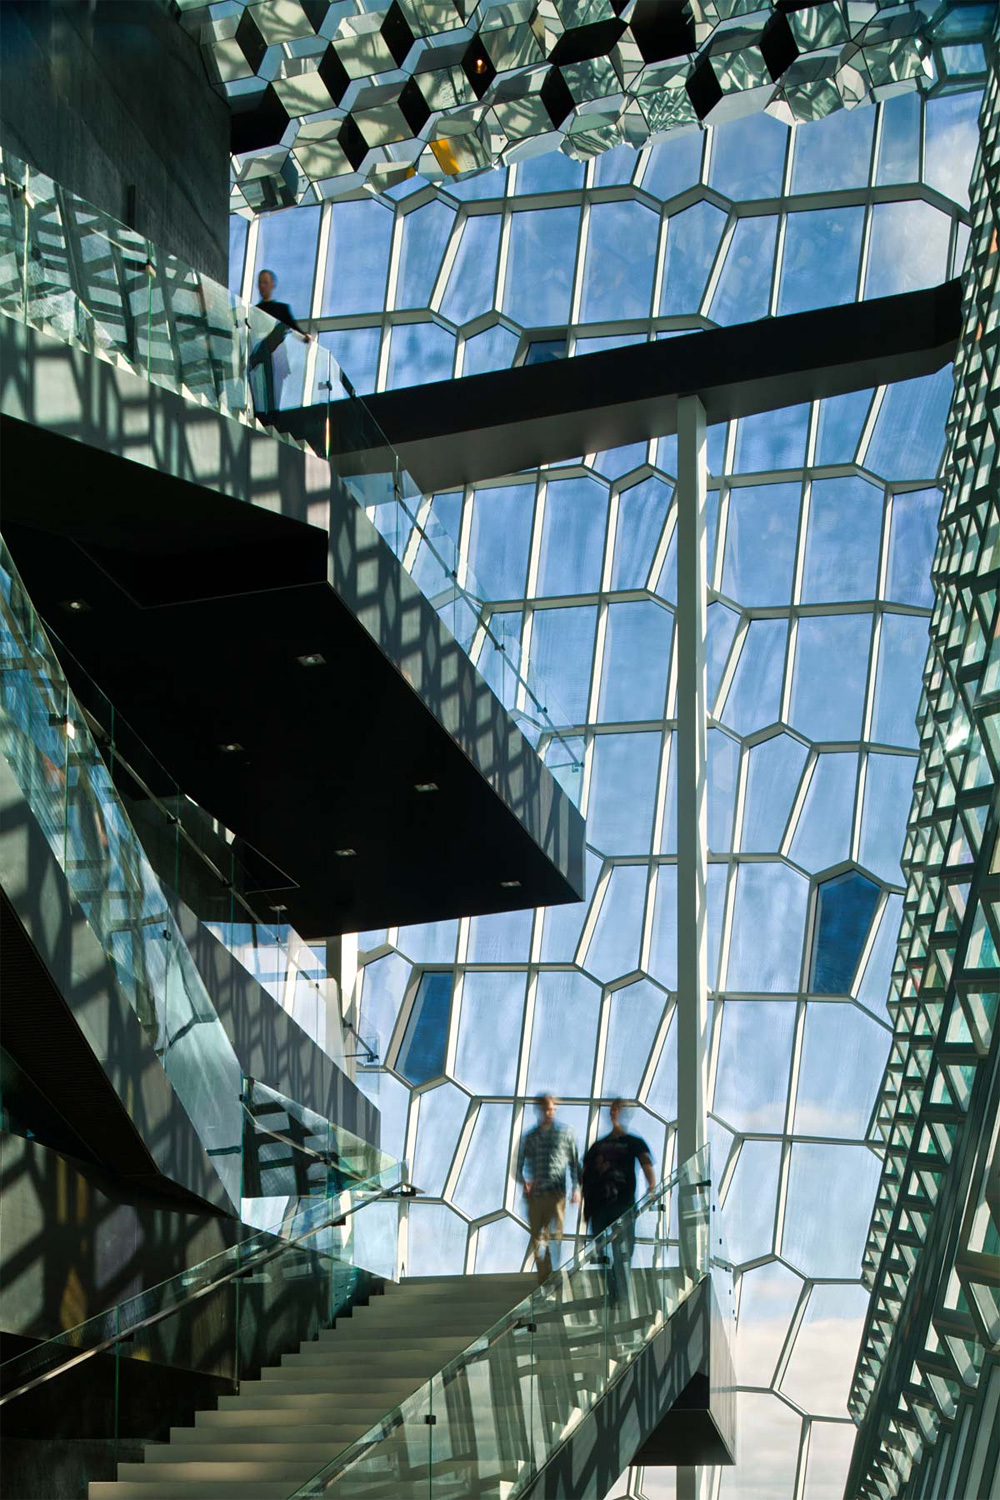 Certainly not trash: one of Eliassons most iconic ventures into the architectural realm is his facade for the Harpa Reykjavik Concert Hall designed by fellow Danes, Henning Larsen Architects. (Image via henninglarsen.com)